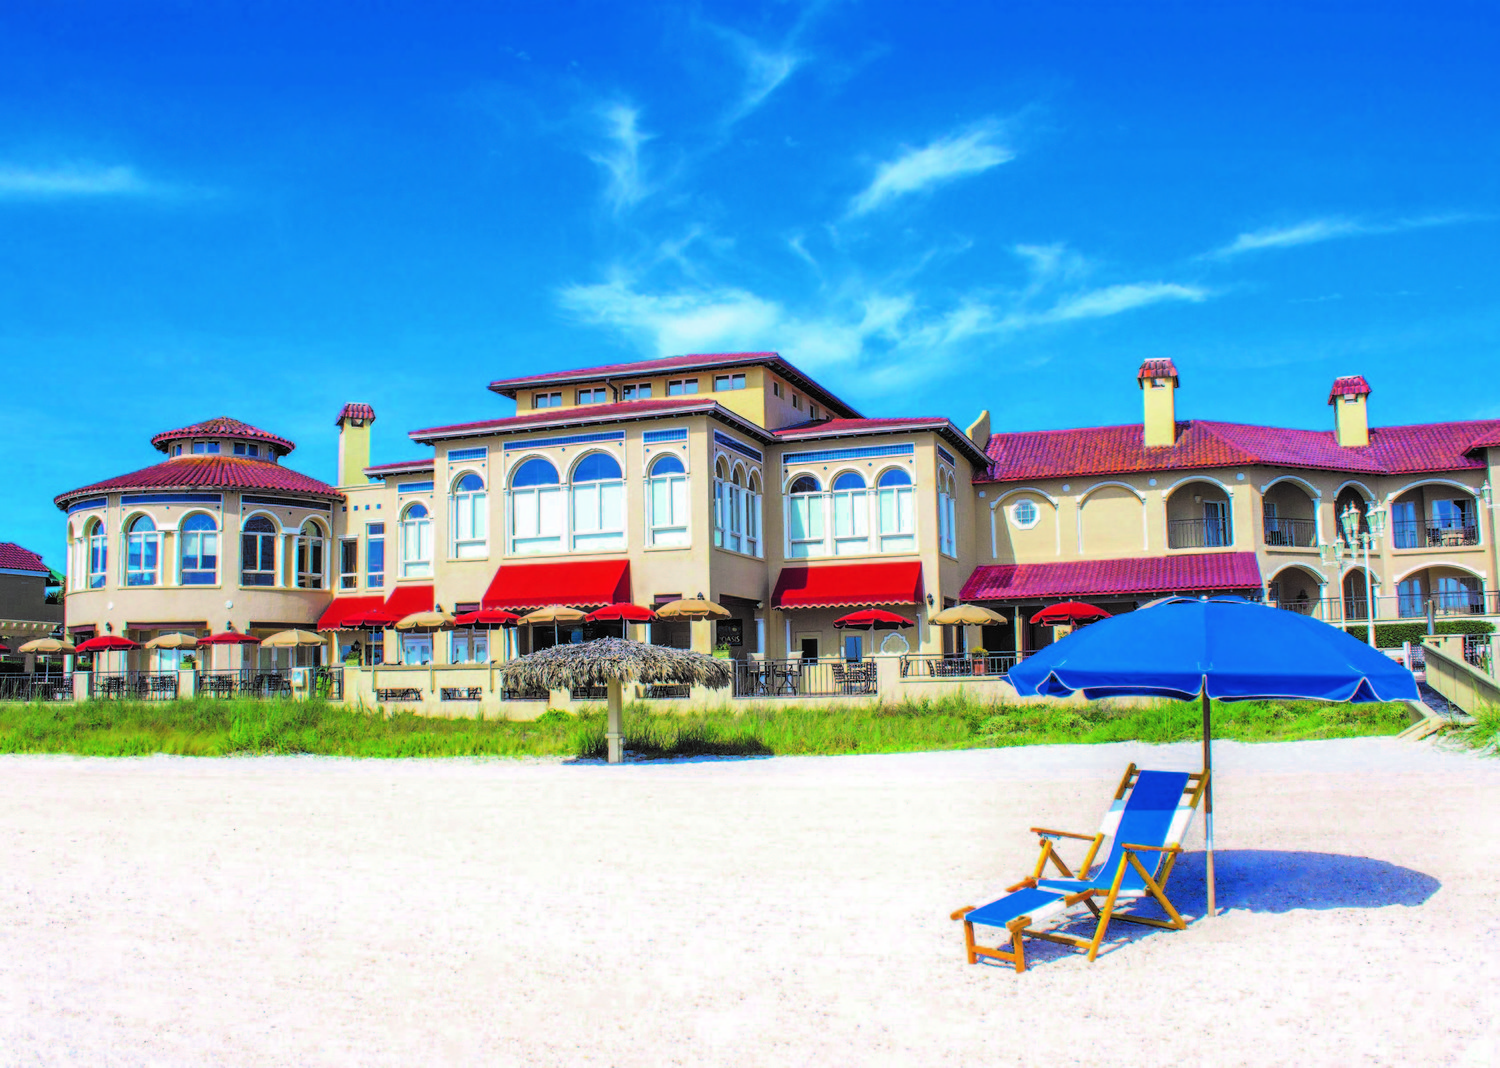 The Carlyle is located adjacent to the Lodge & Club, a AAA Four-Diamond boutique hotel in Ponte Vedra Beach.